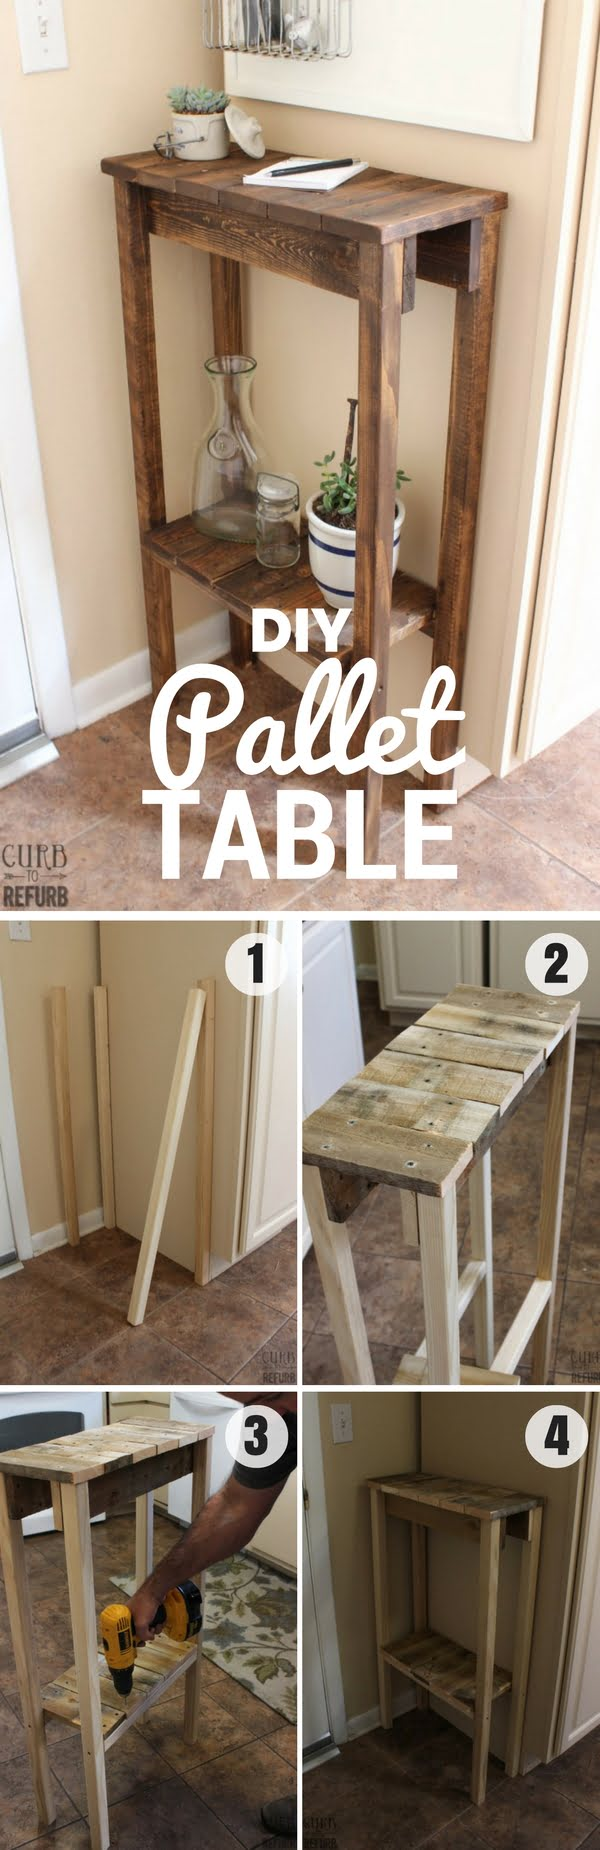 Check out how to build this easy DIY Pallet Table